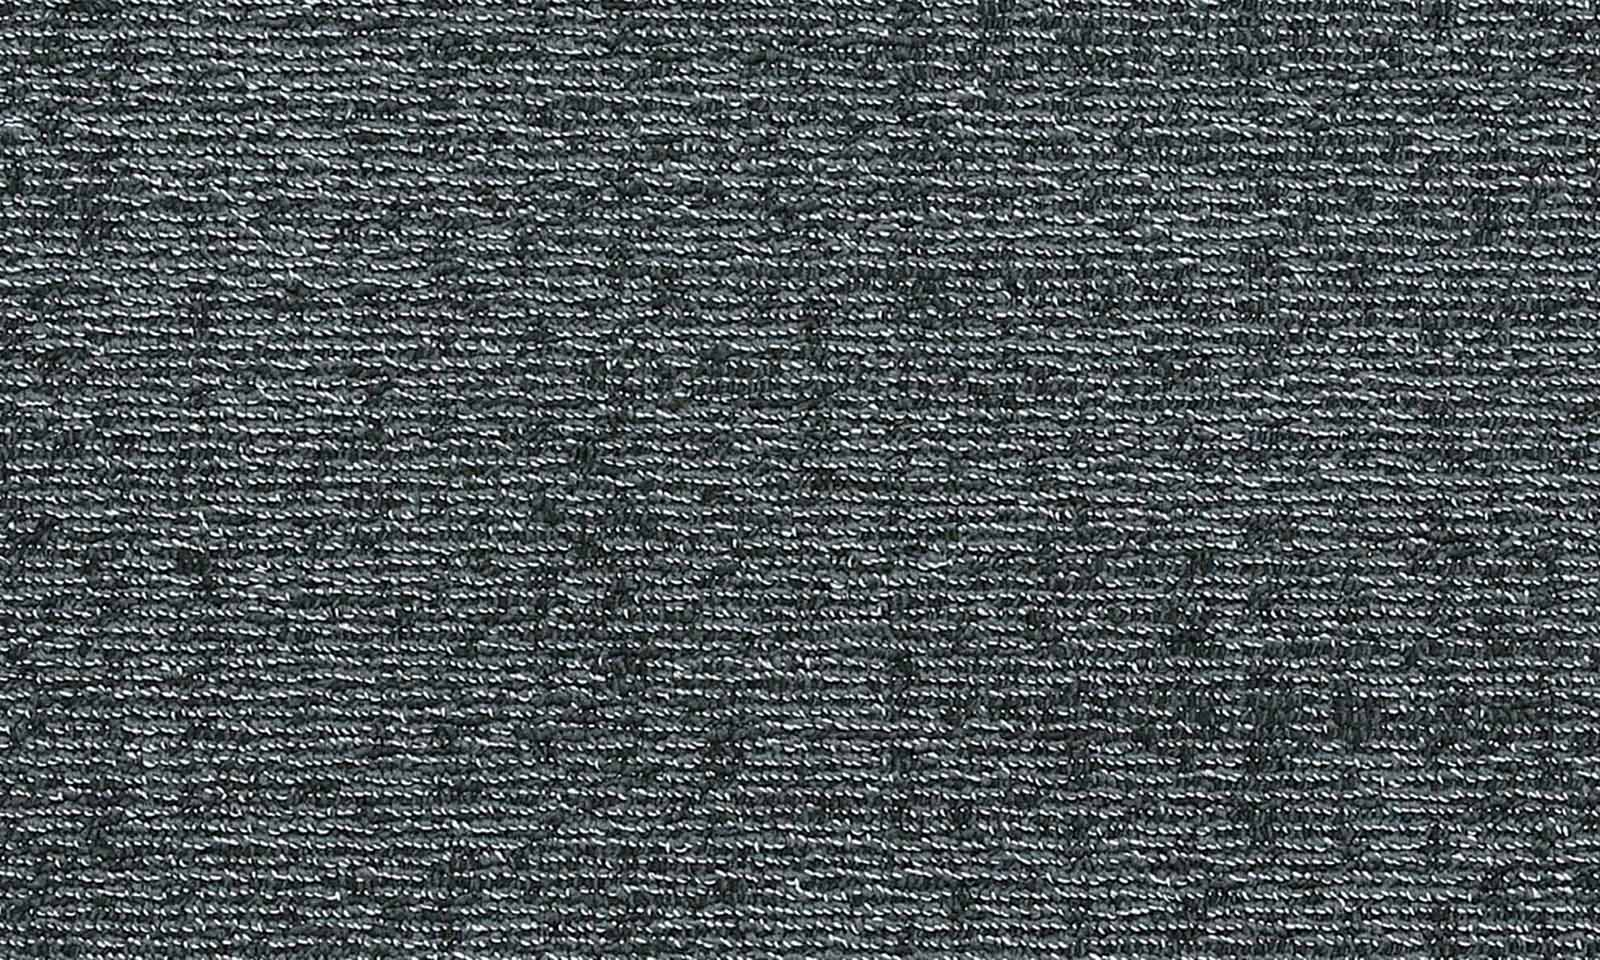 T81609 Collection - T816G Immerse Carpet